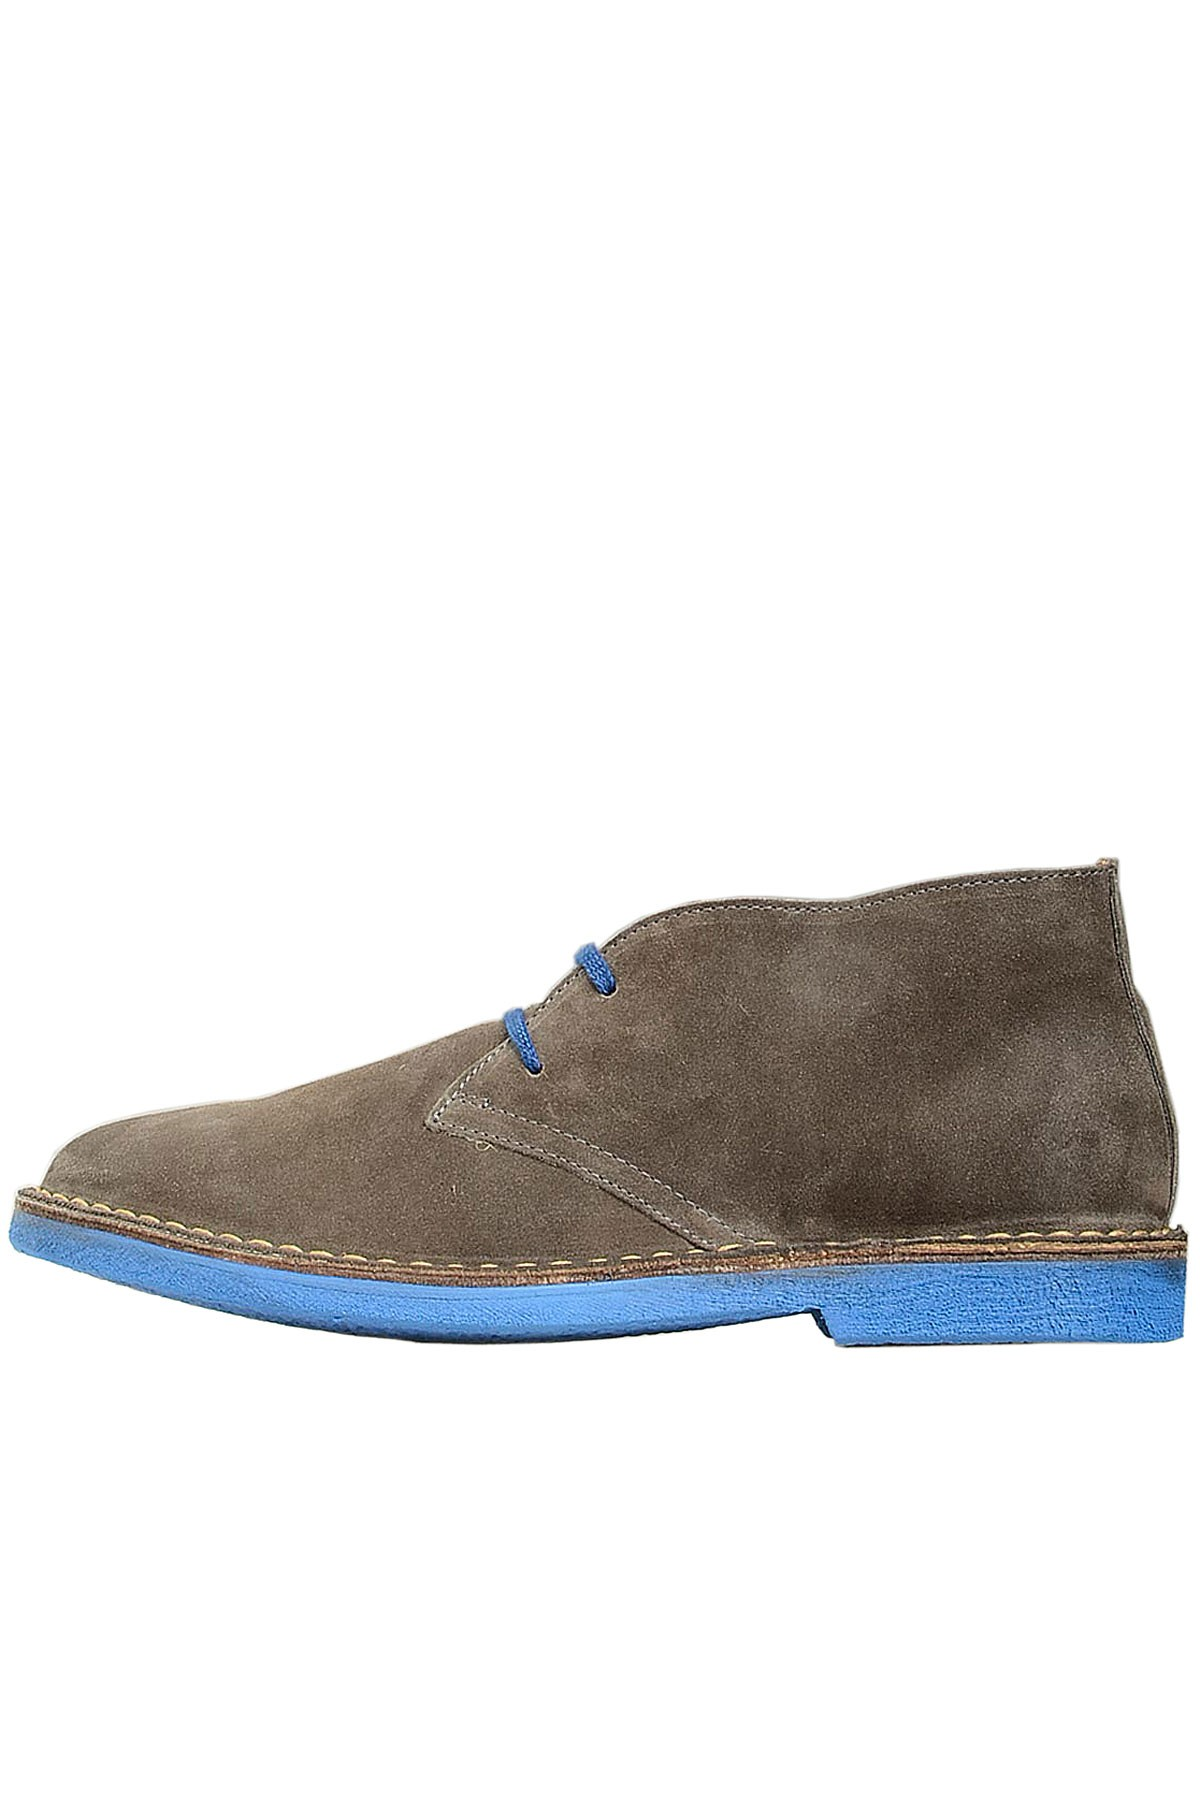 the best attitude 9acbe 998cf WALLY WALKER Chukka Asfalt Grey. Desert boot per uomo AI